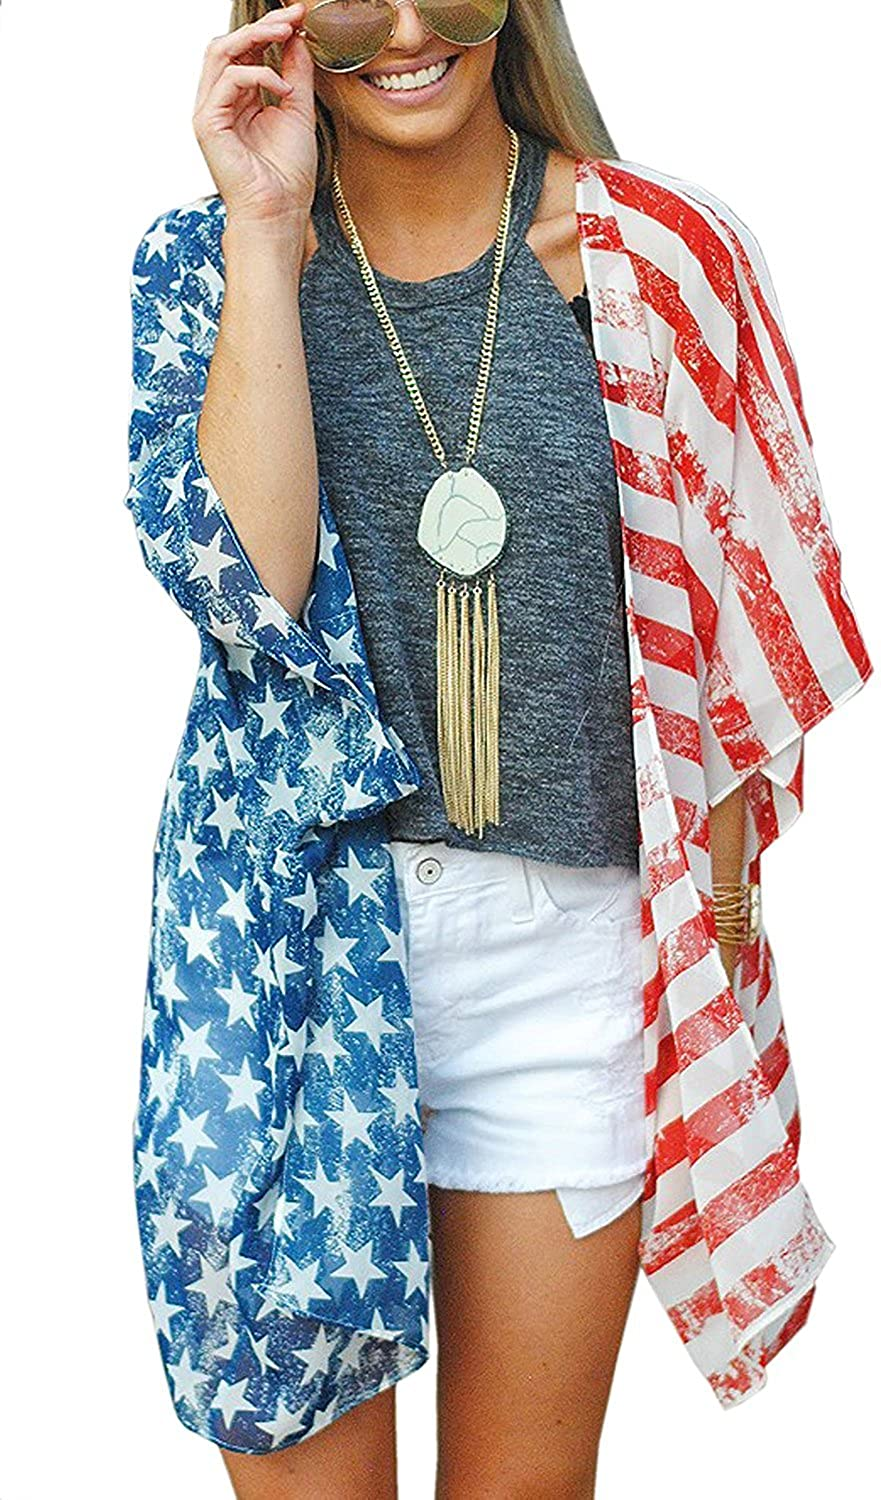 4th of July Women's American Flag Print Kimono Cover Up Tops Shirt Patriotic Cardigan (one Size, Picture Color) at  Women's Clothing store